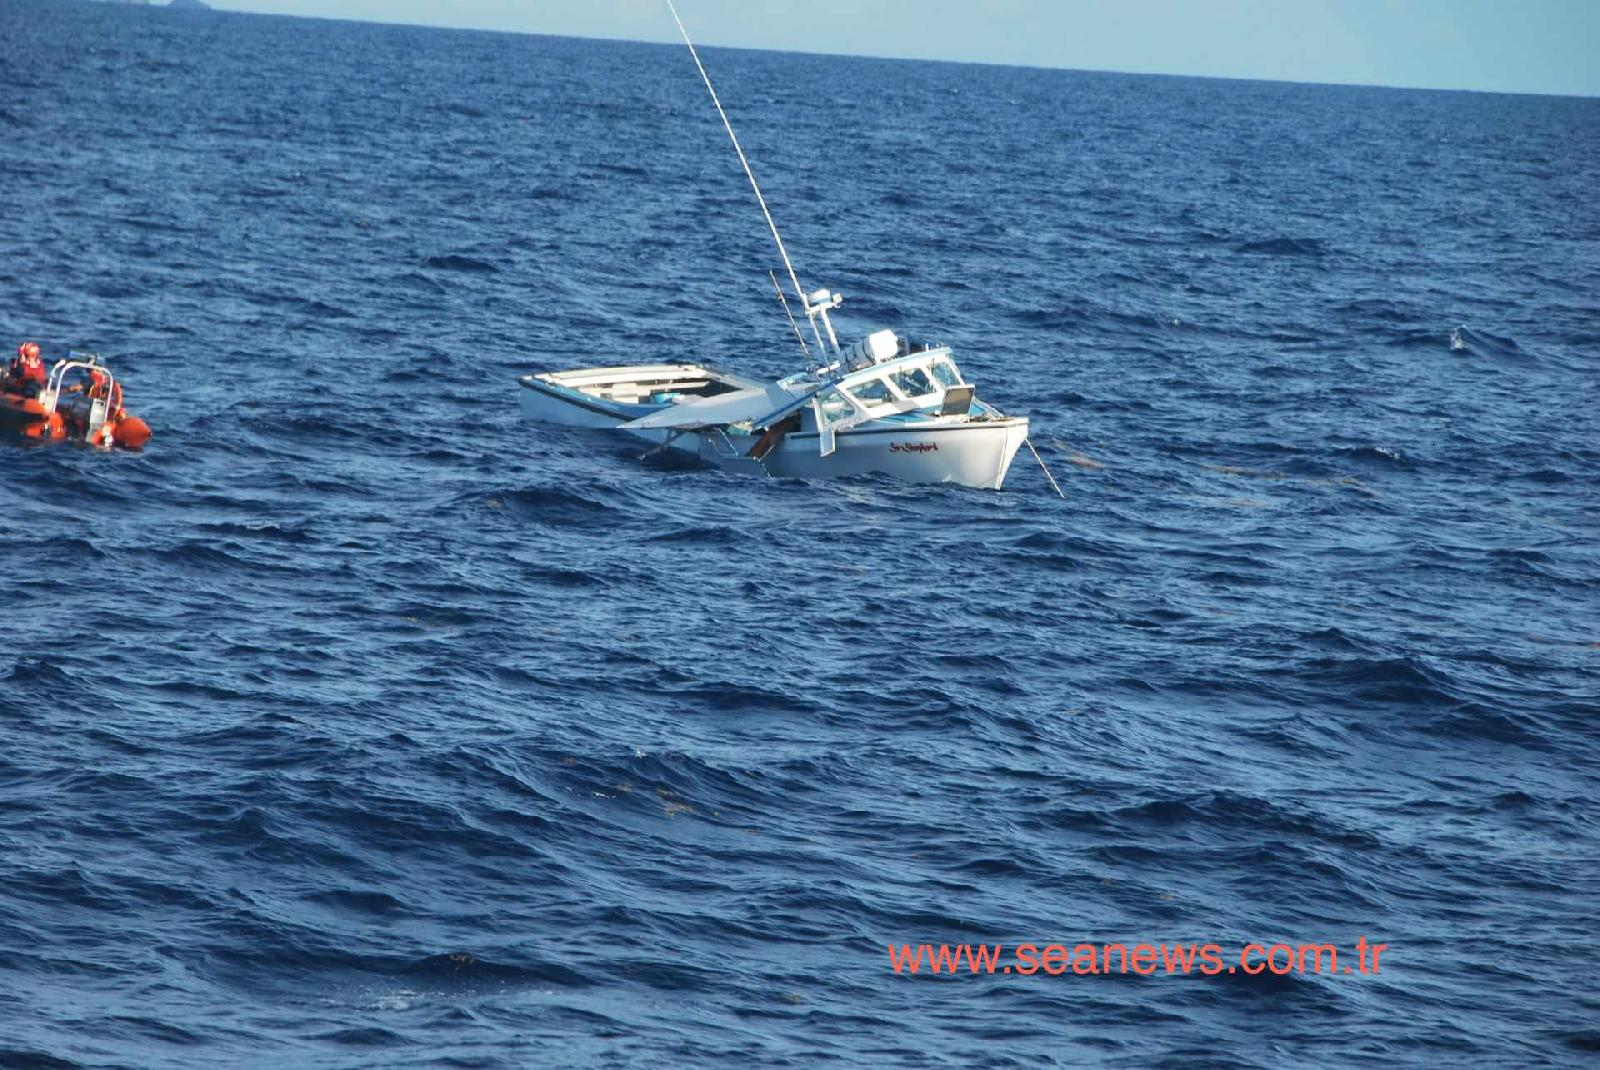 Coast Guard cutter collides with and sinks fishing boat